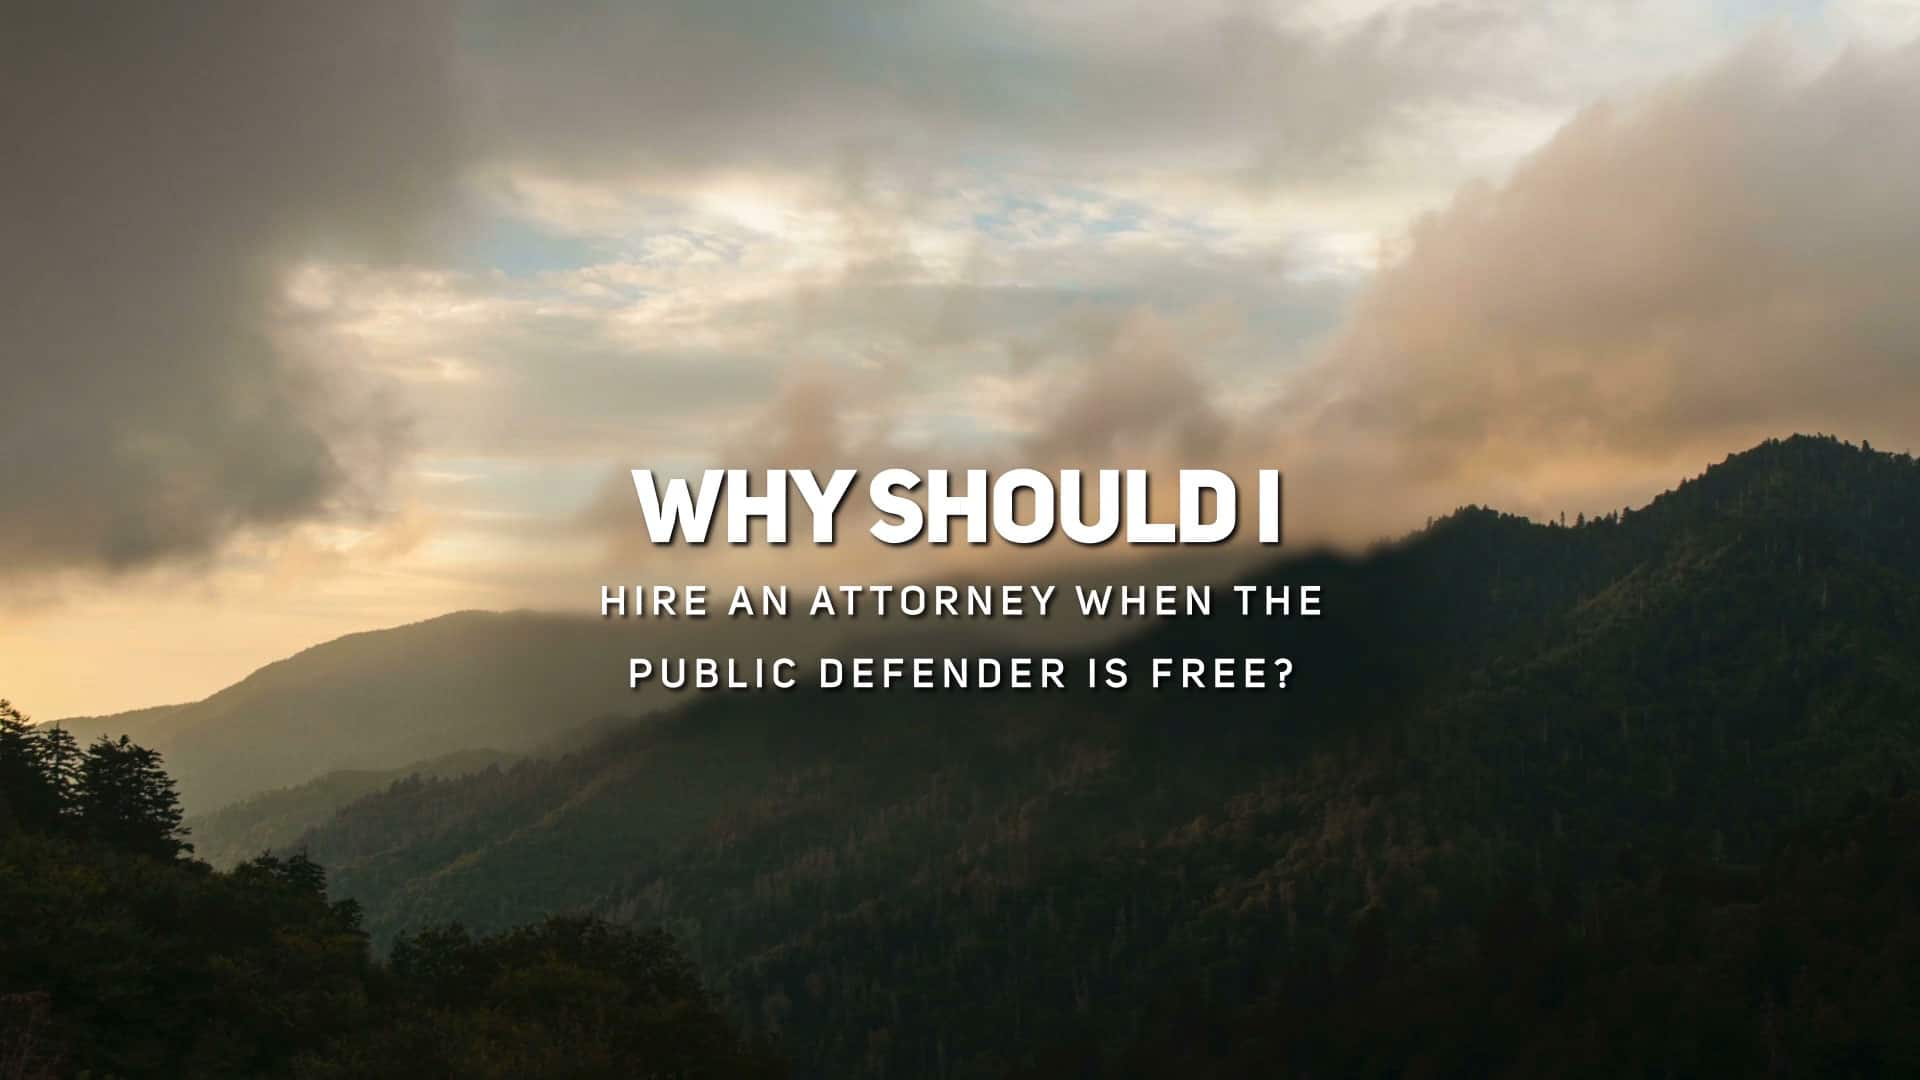 Why Should I Hire an Attorney When the Public Defender is Free